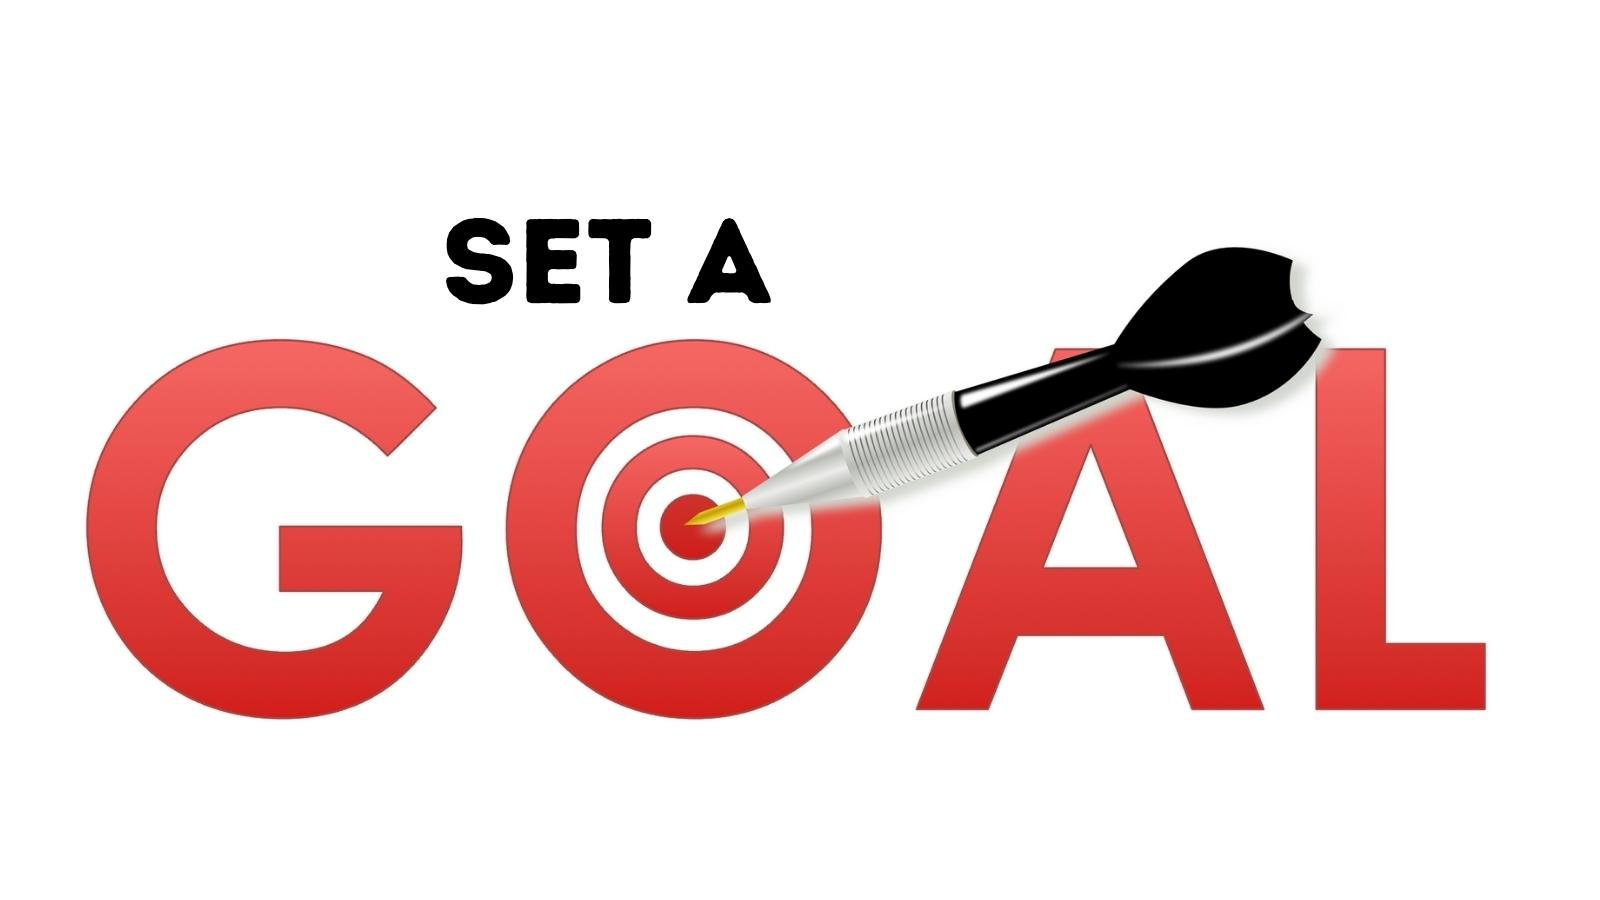 Your freelancer's goal setting process starts with setting a goal